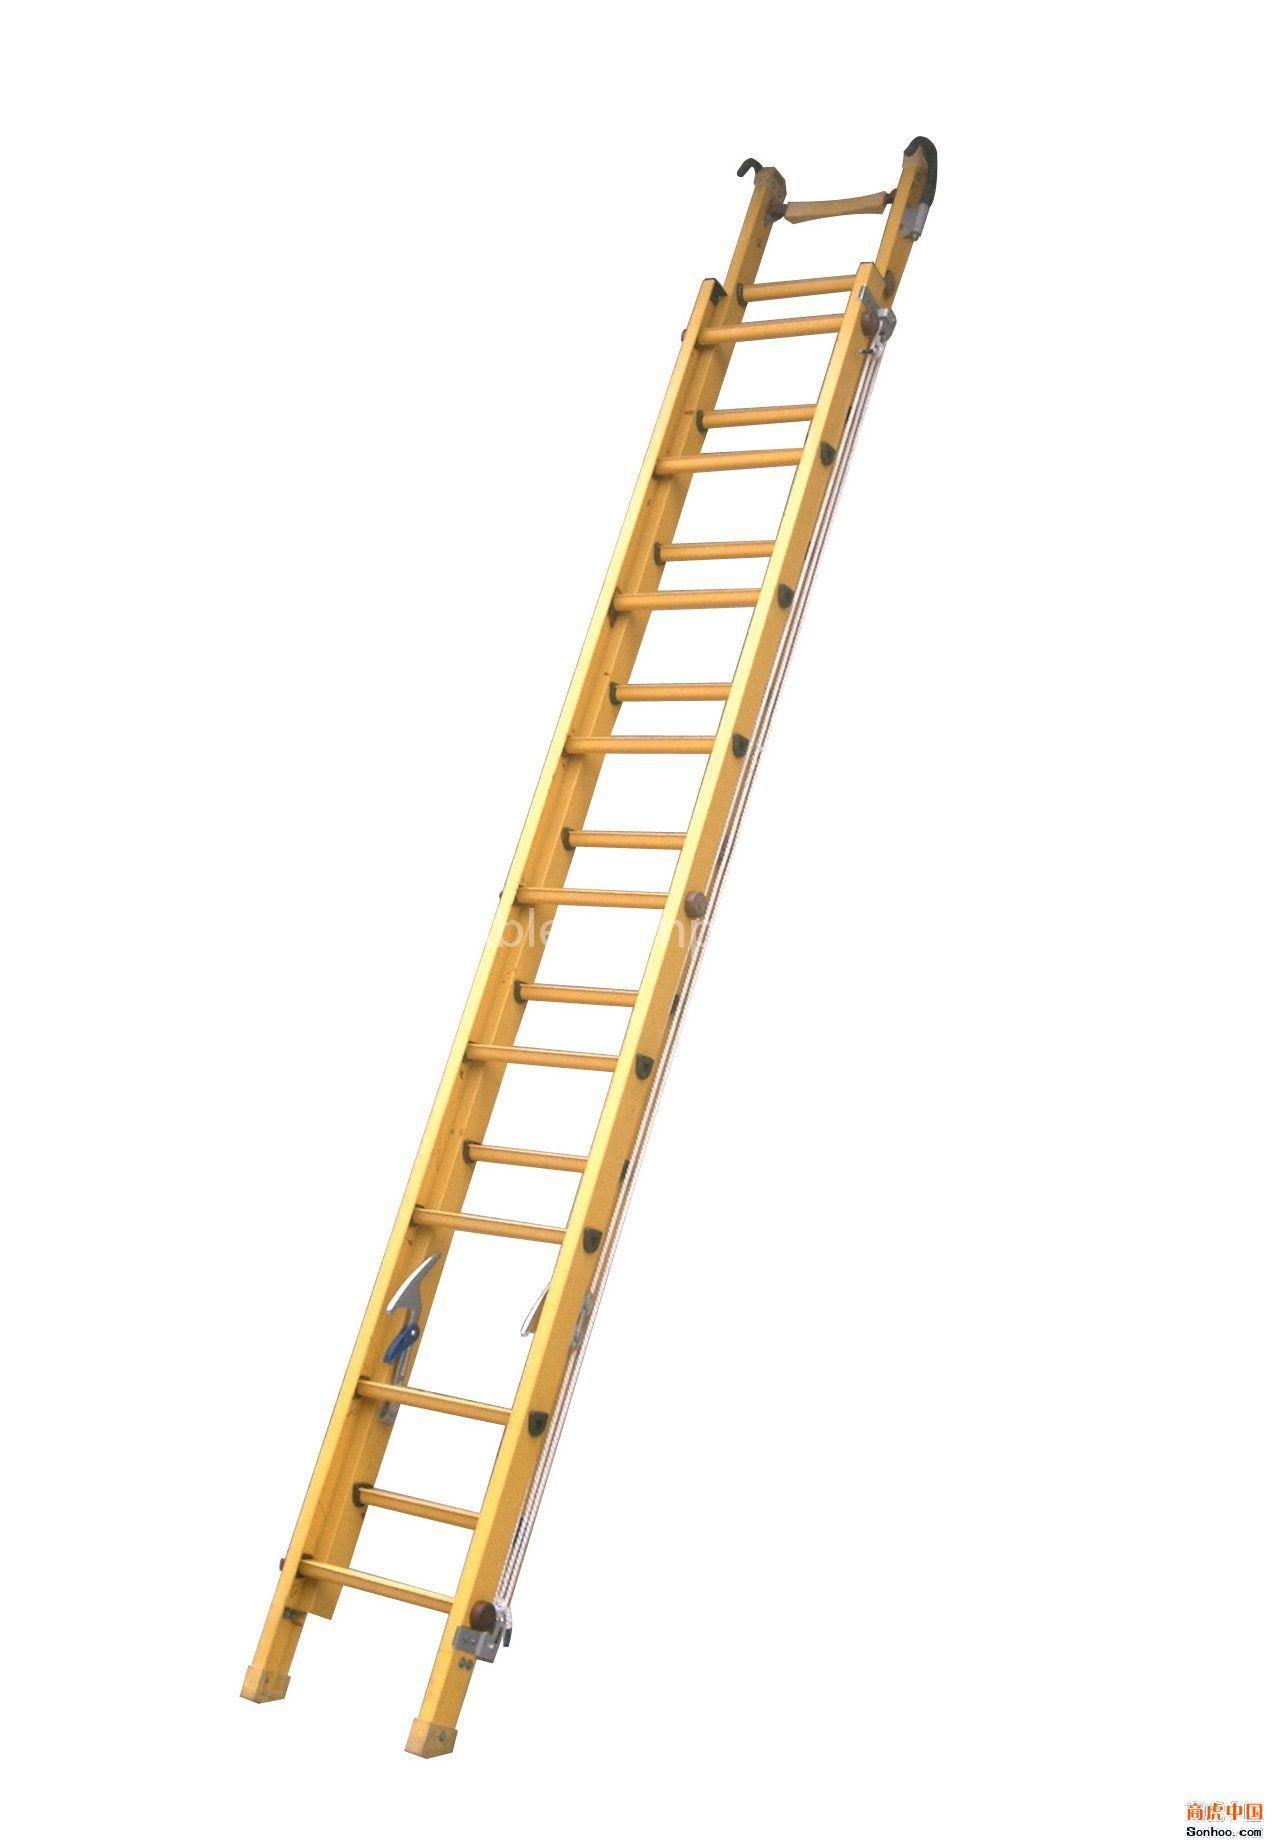 Extension Ladders: How to Use and Secure Them Safely ...